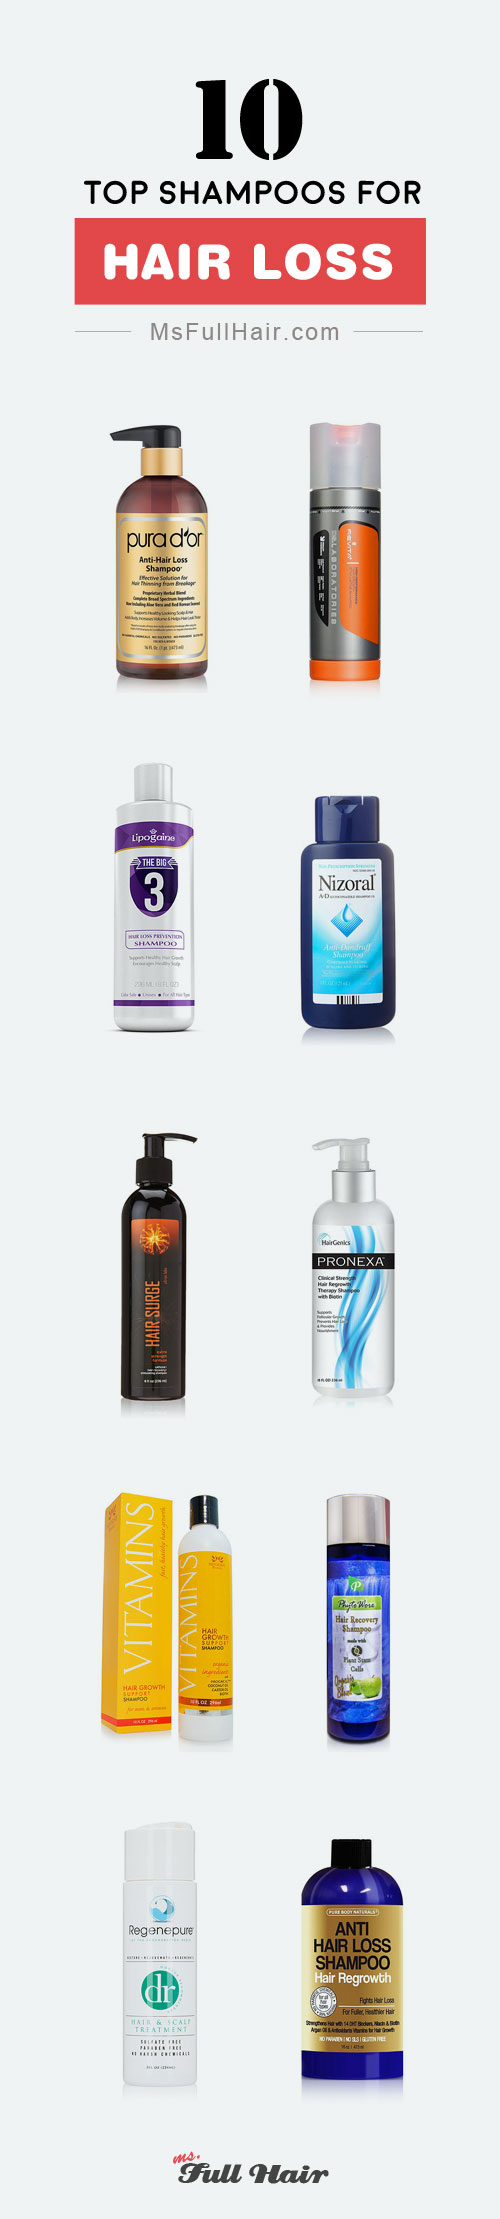 best hair loss shampoo 2017 for thinning hair